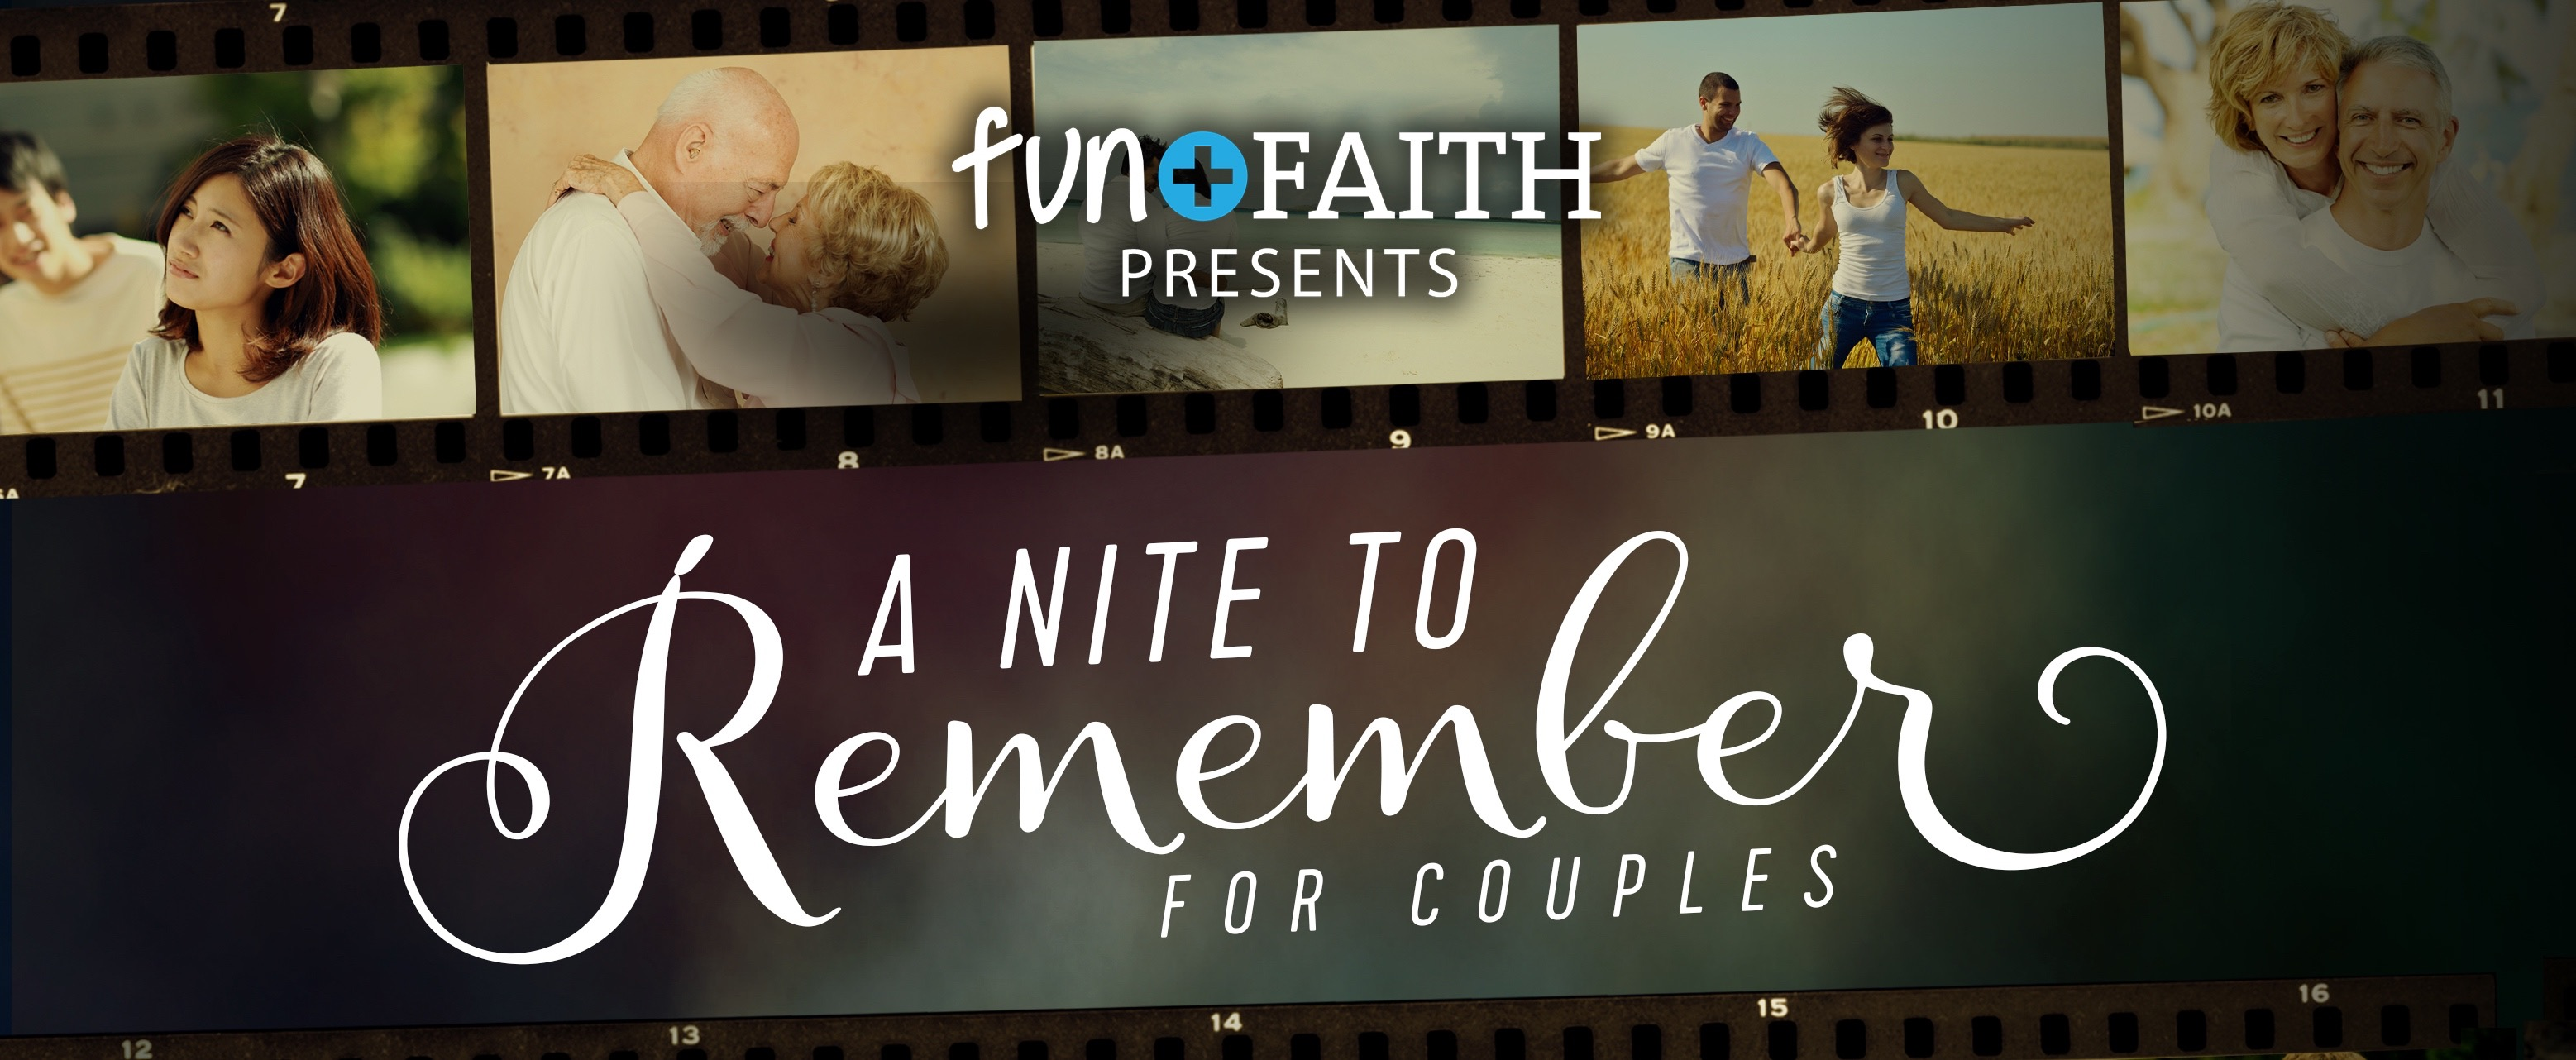 Tickets for A Nite To Remember for Couples in Griffin from BuzzTix